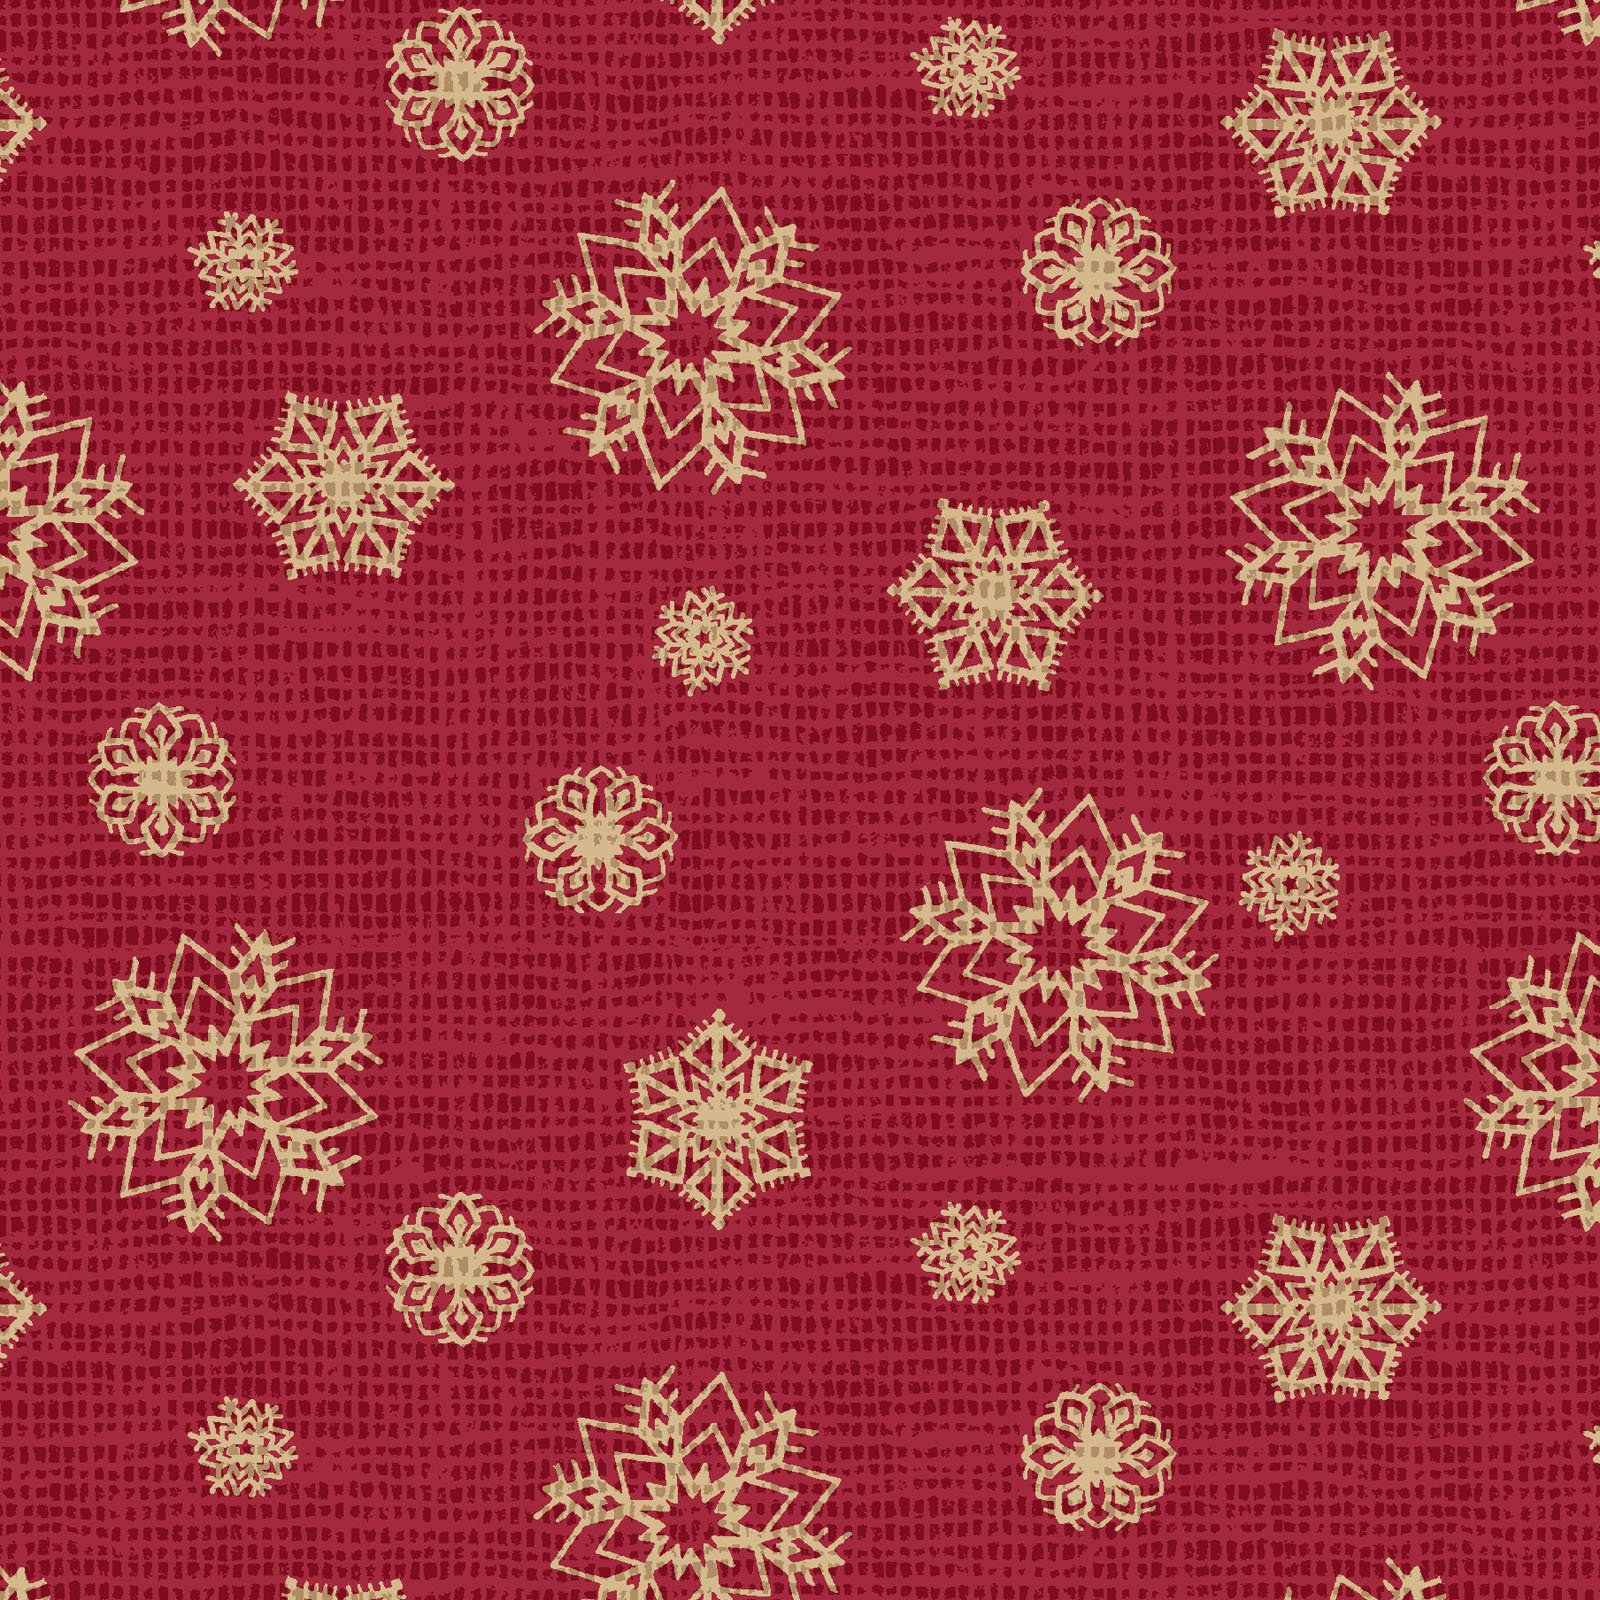 POHO-4442 R  - POSTCARD HOLIDAY BY PELLA STUDIO SNOWFLAKE RED - ARRIVING IN JULY 2021